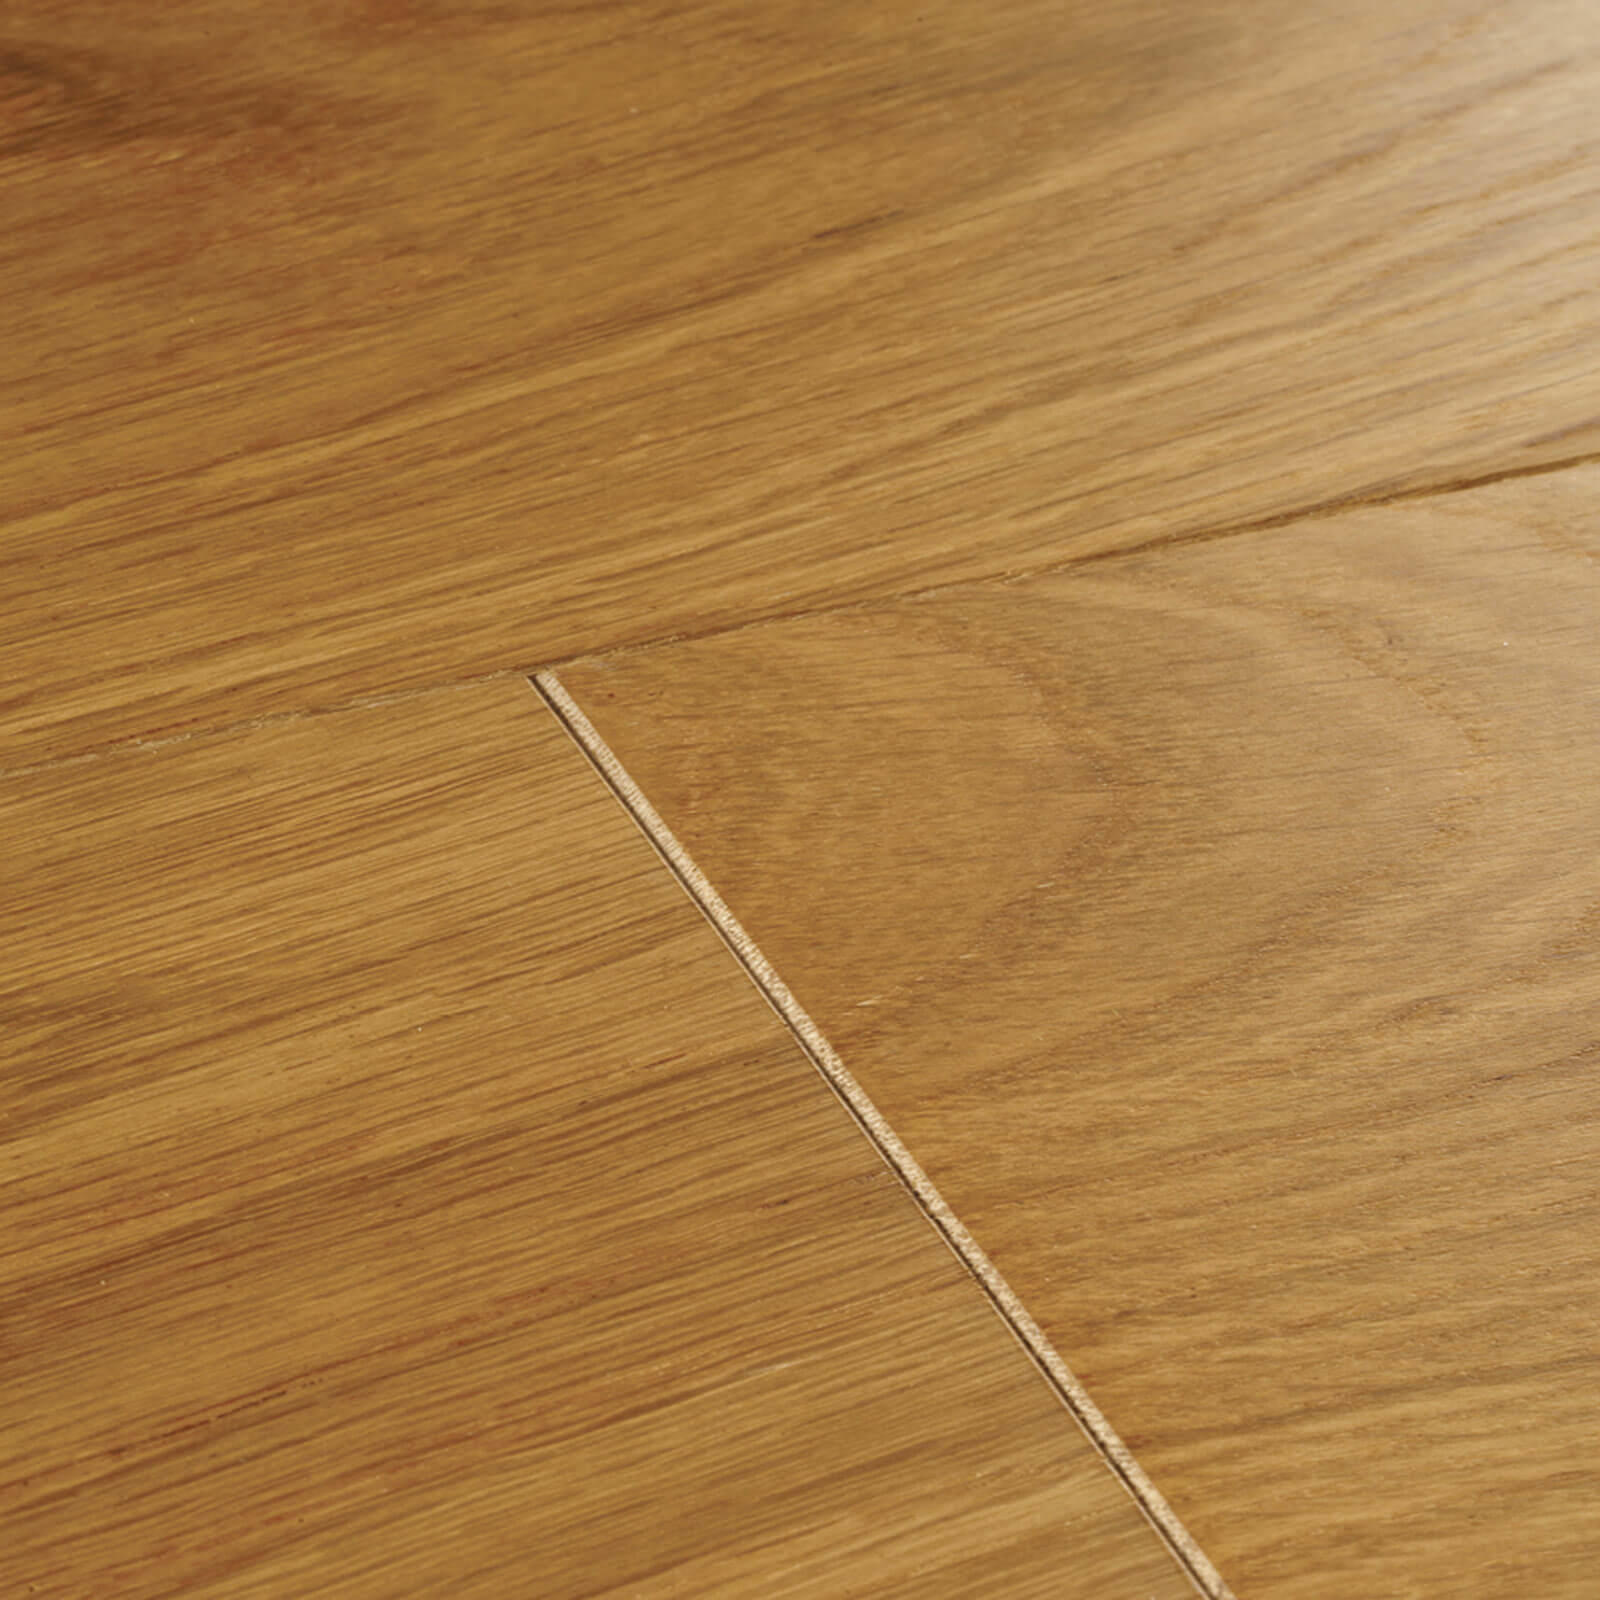 Woodpecker Harlech Rustic Oak Brushed & Matt Lacquered Engineered Wood Flooring 150mm 35-HOB-001